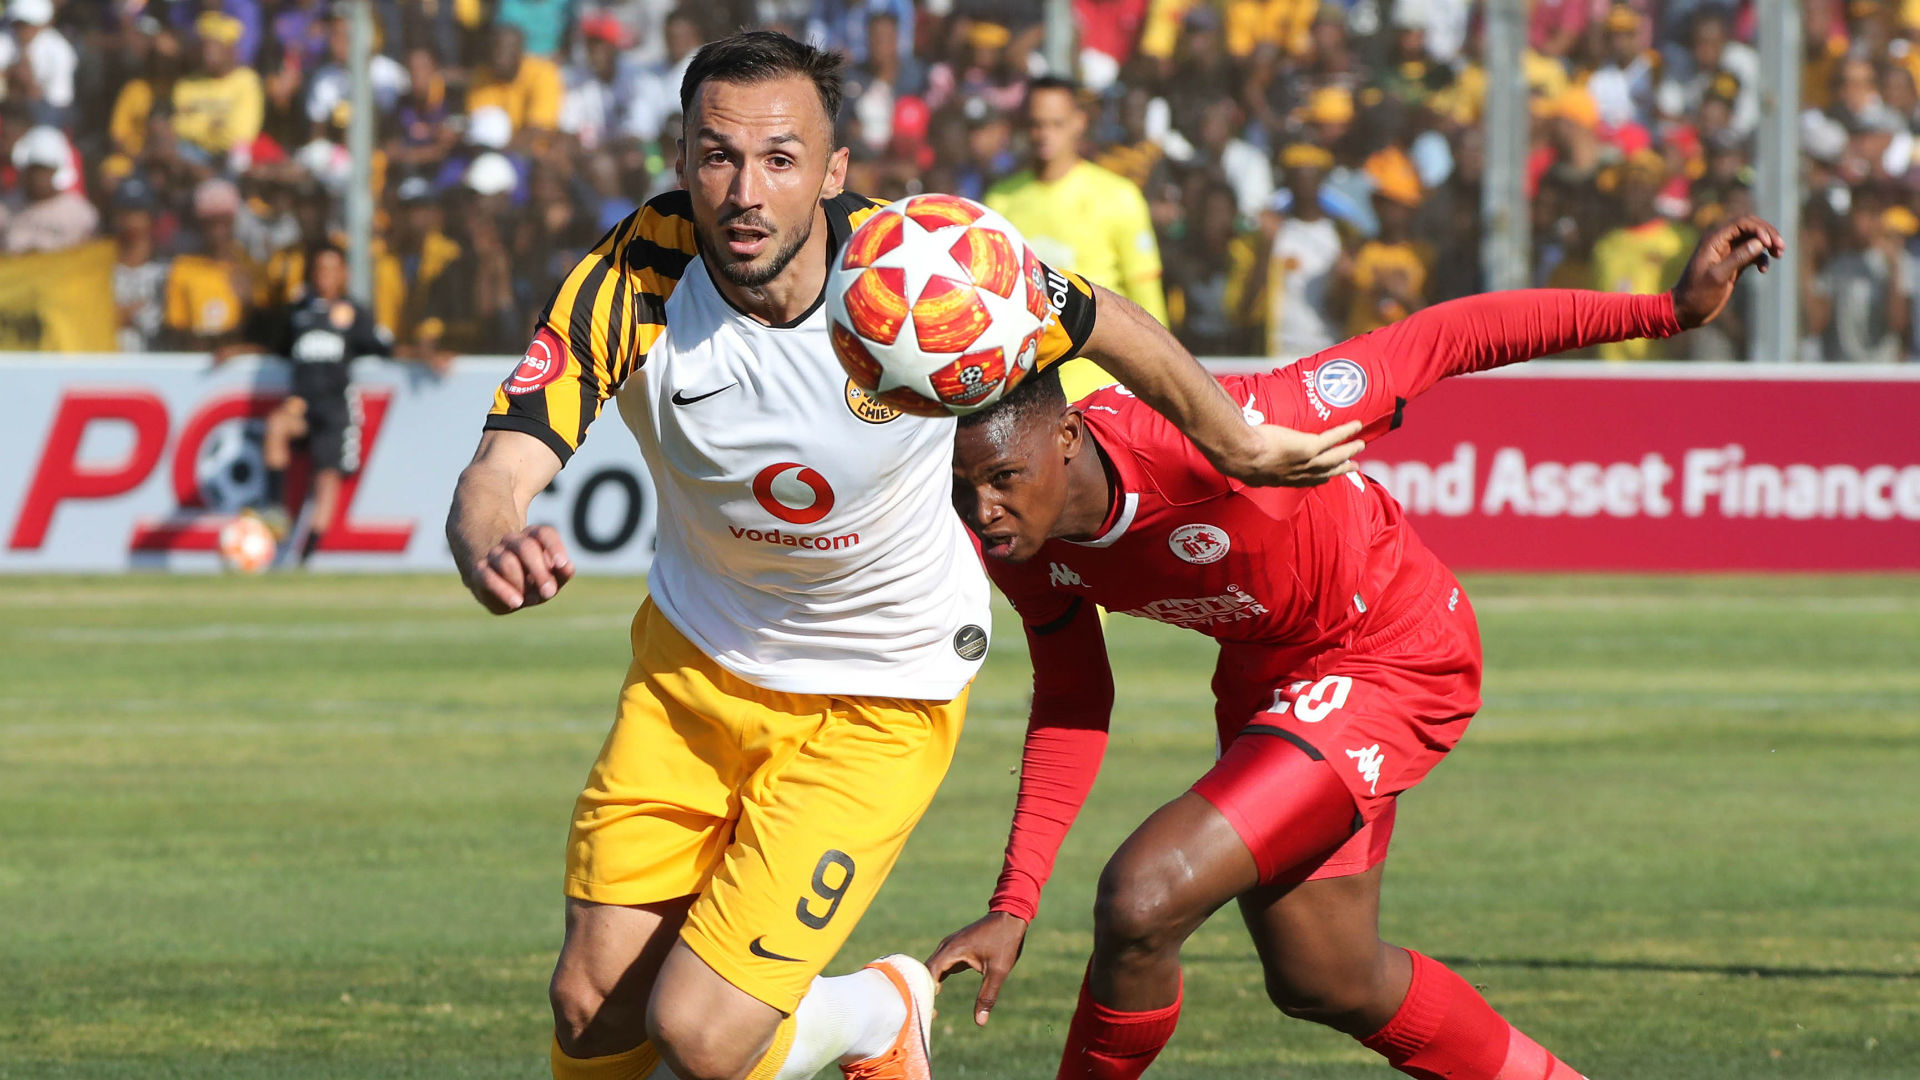 Nurkovic will score more than 10 goals for Kaizer Chiefs this season - Khuse